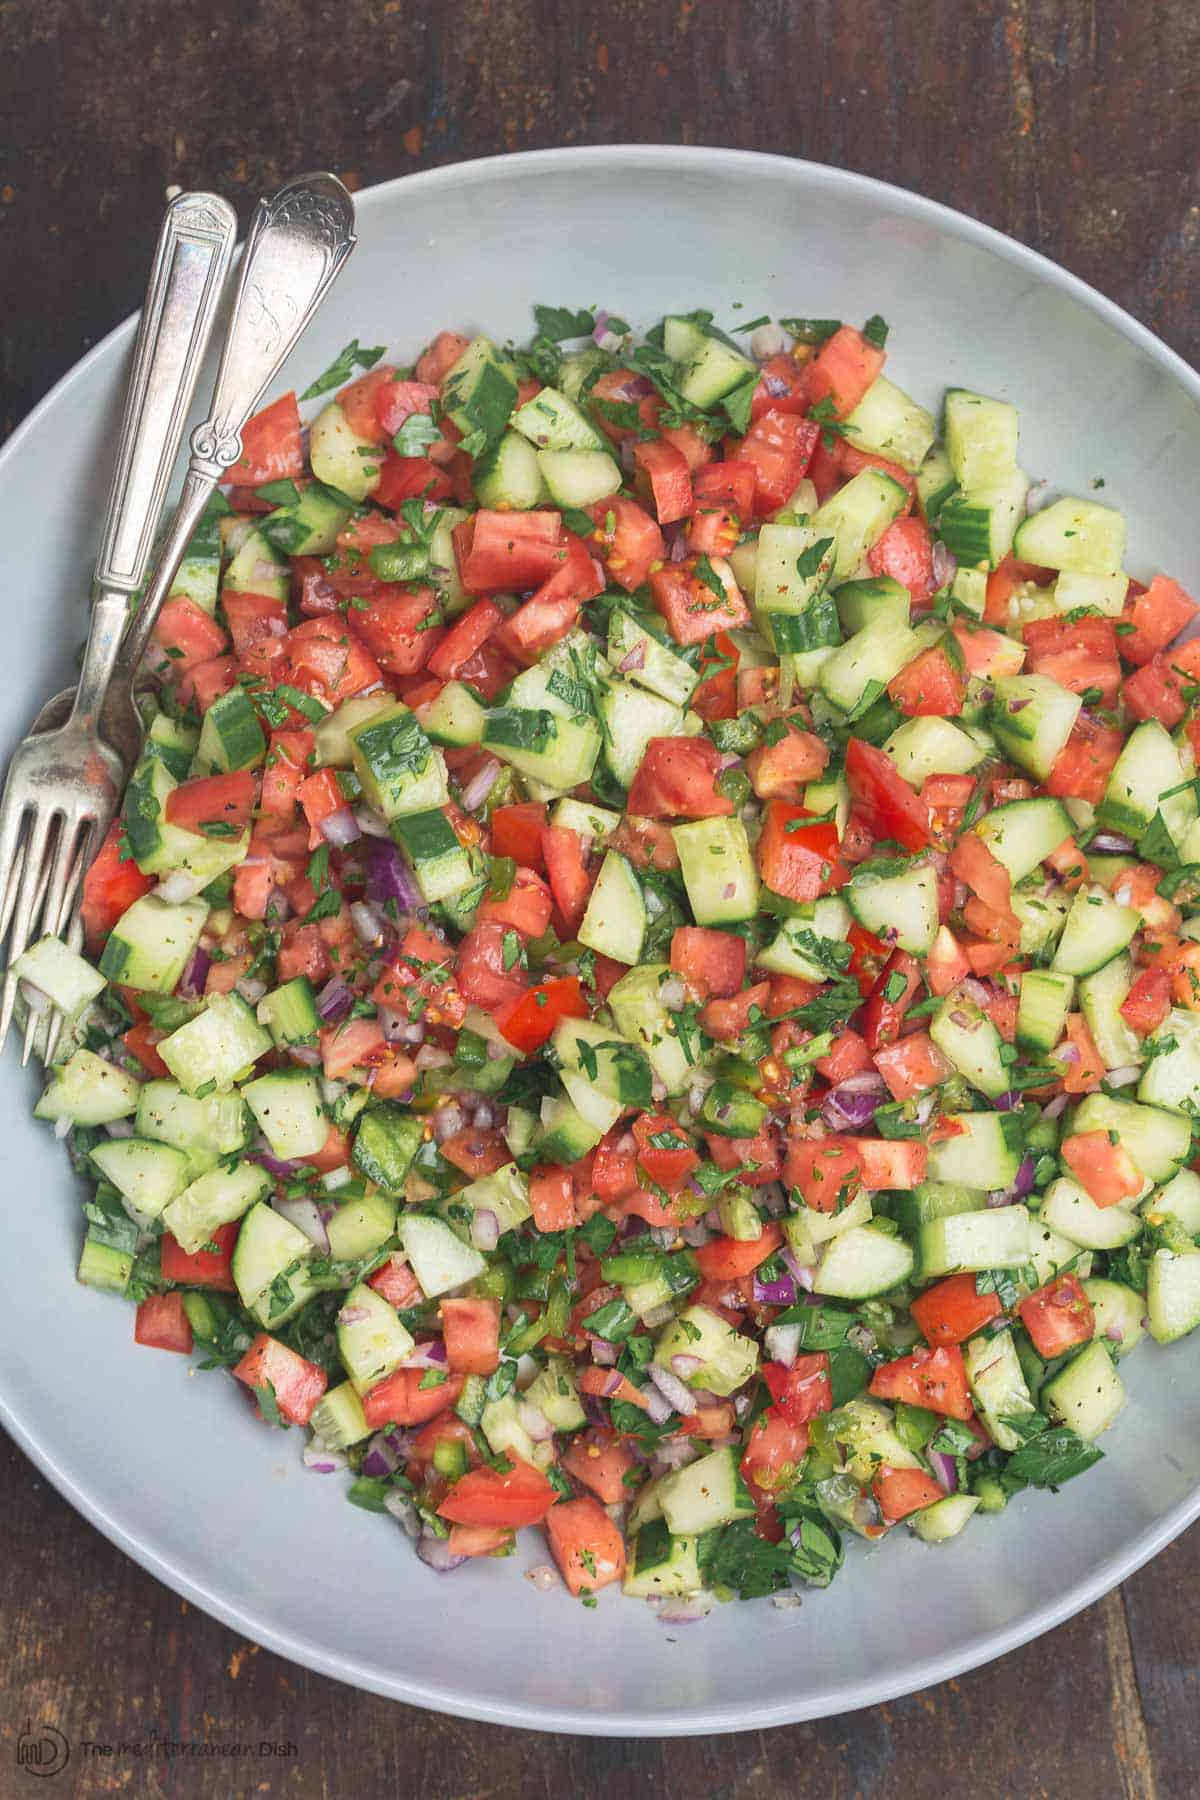 Mixed shiarzi salad with cucumbers, tomatoes, bell peppers, onions, and fresh herbs